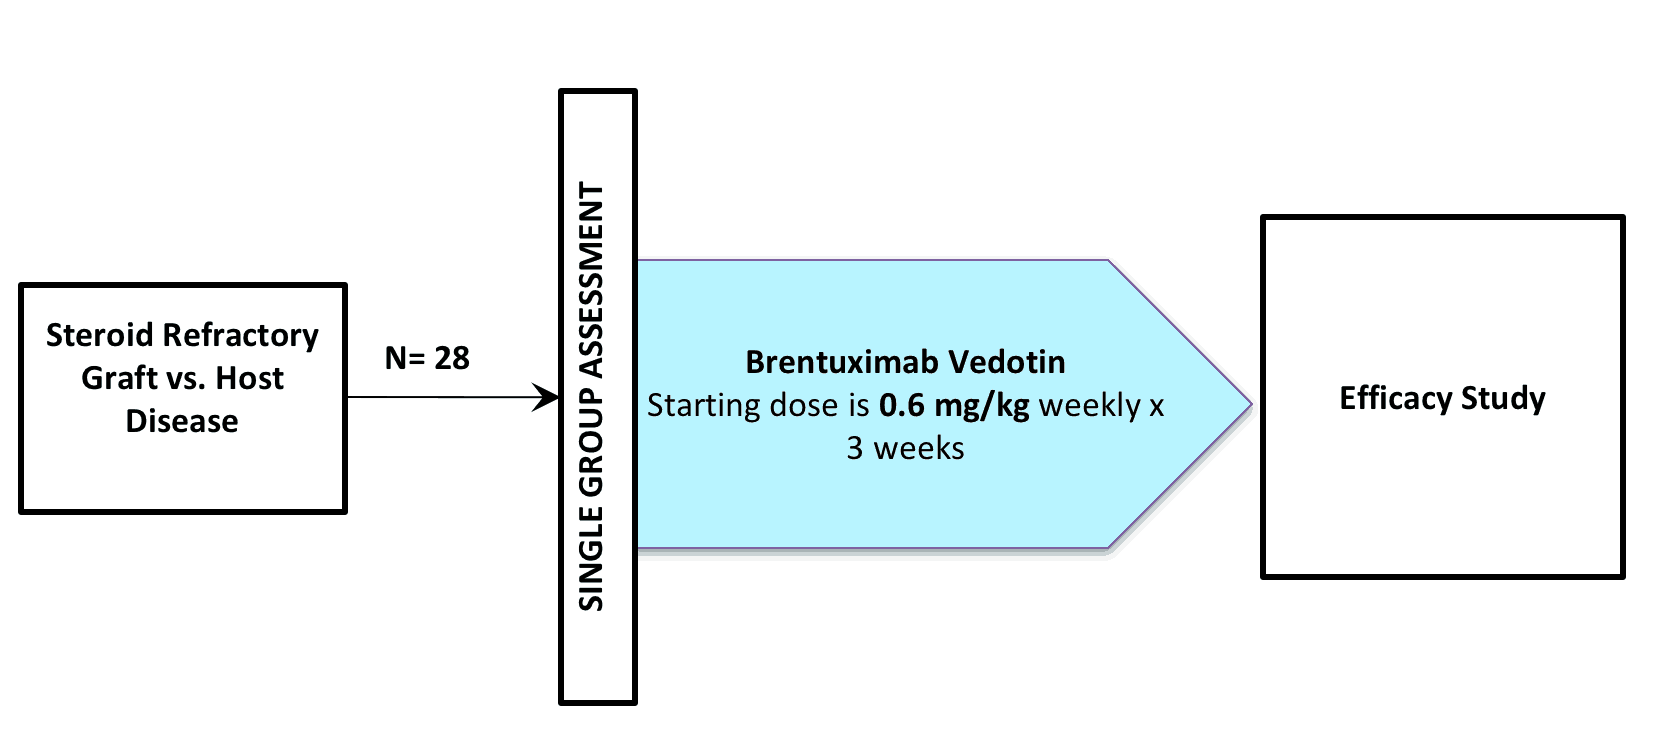 NCT01596218 (CLINICAL TRIAL / BRENTUXIMAB VEDOTIN / SGN-035 / ADCETRIS®)